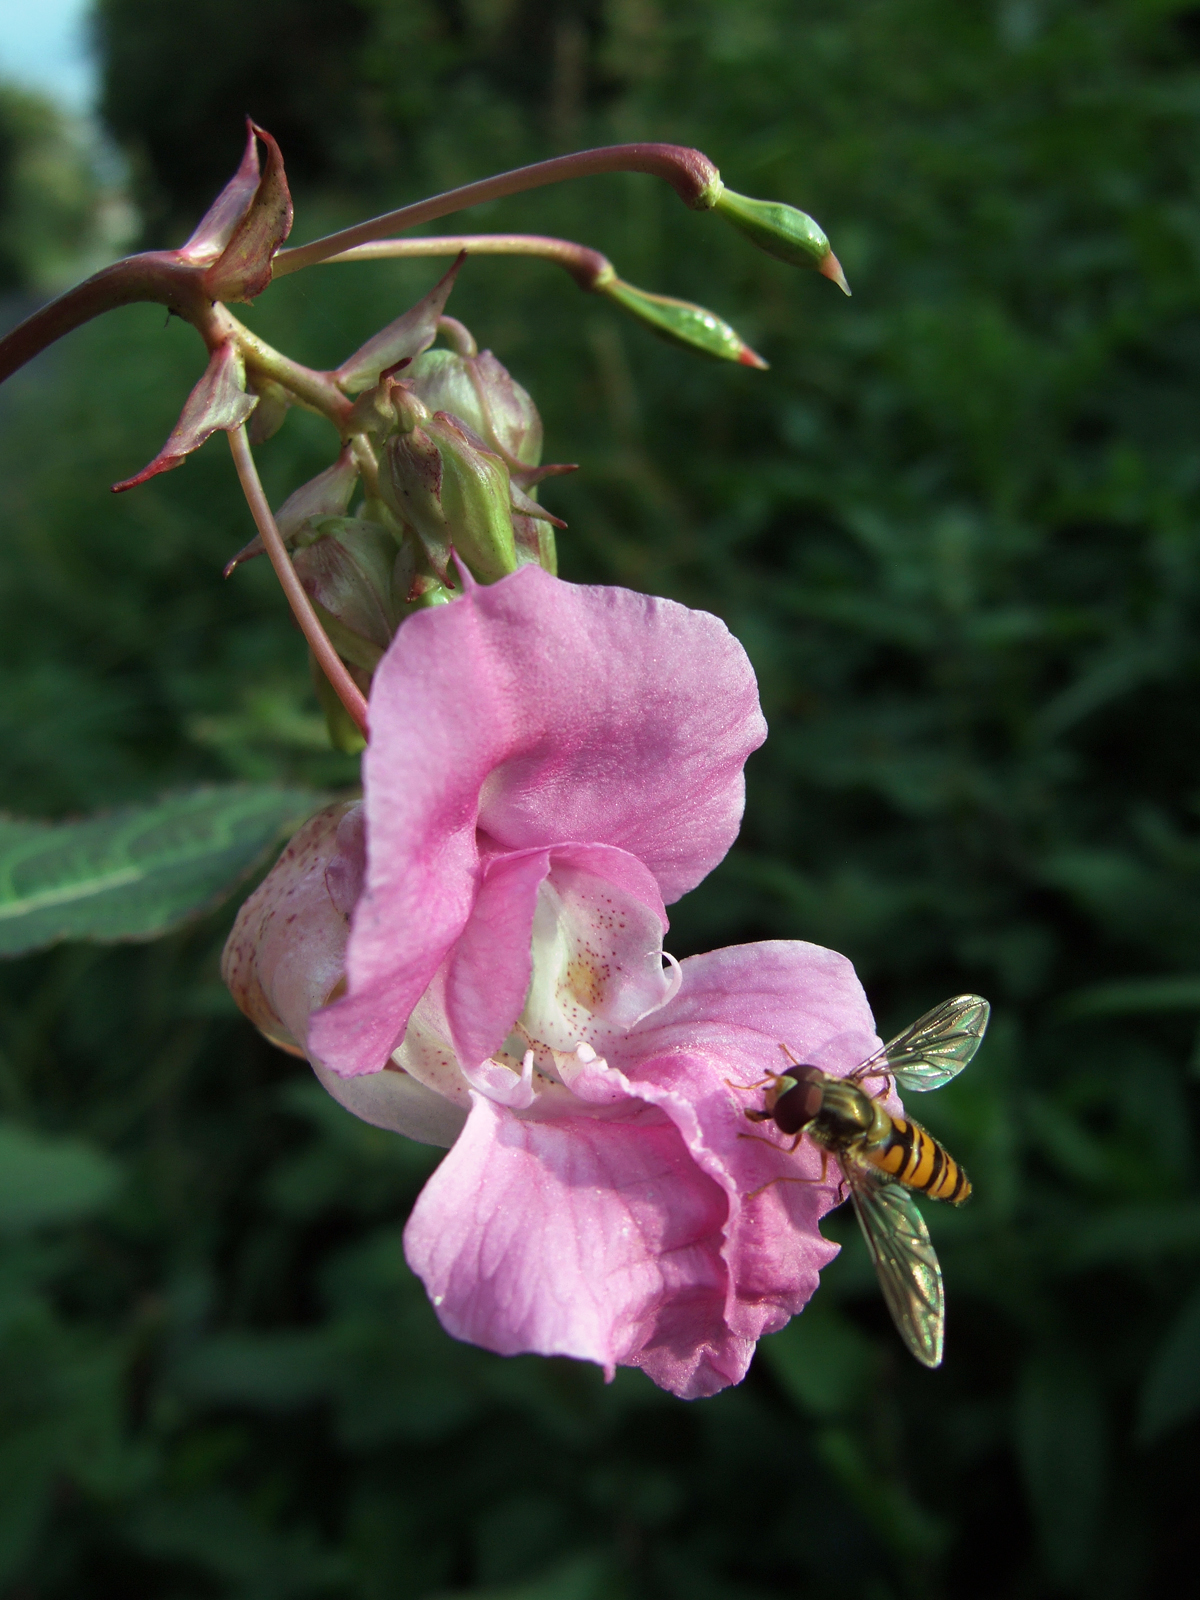 close up photo of flower with insect